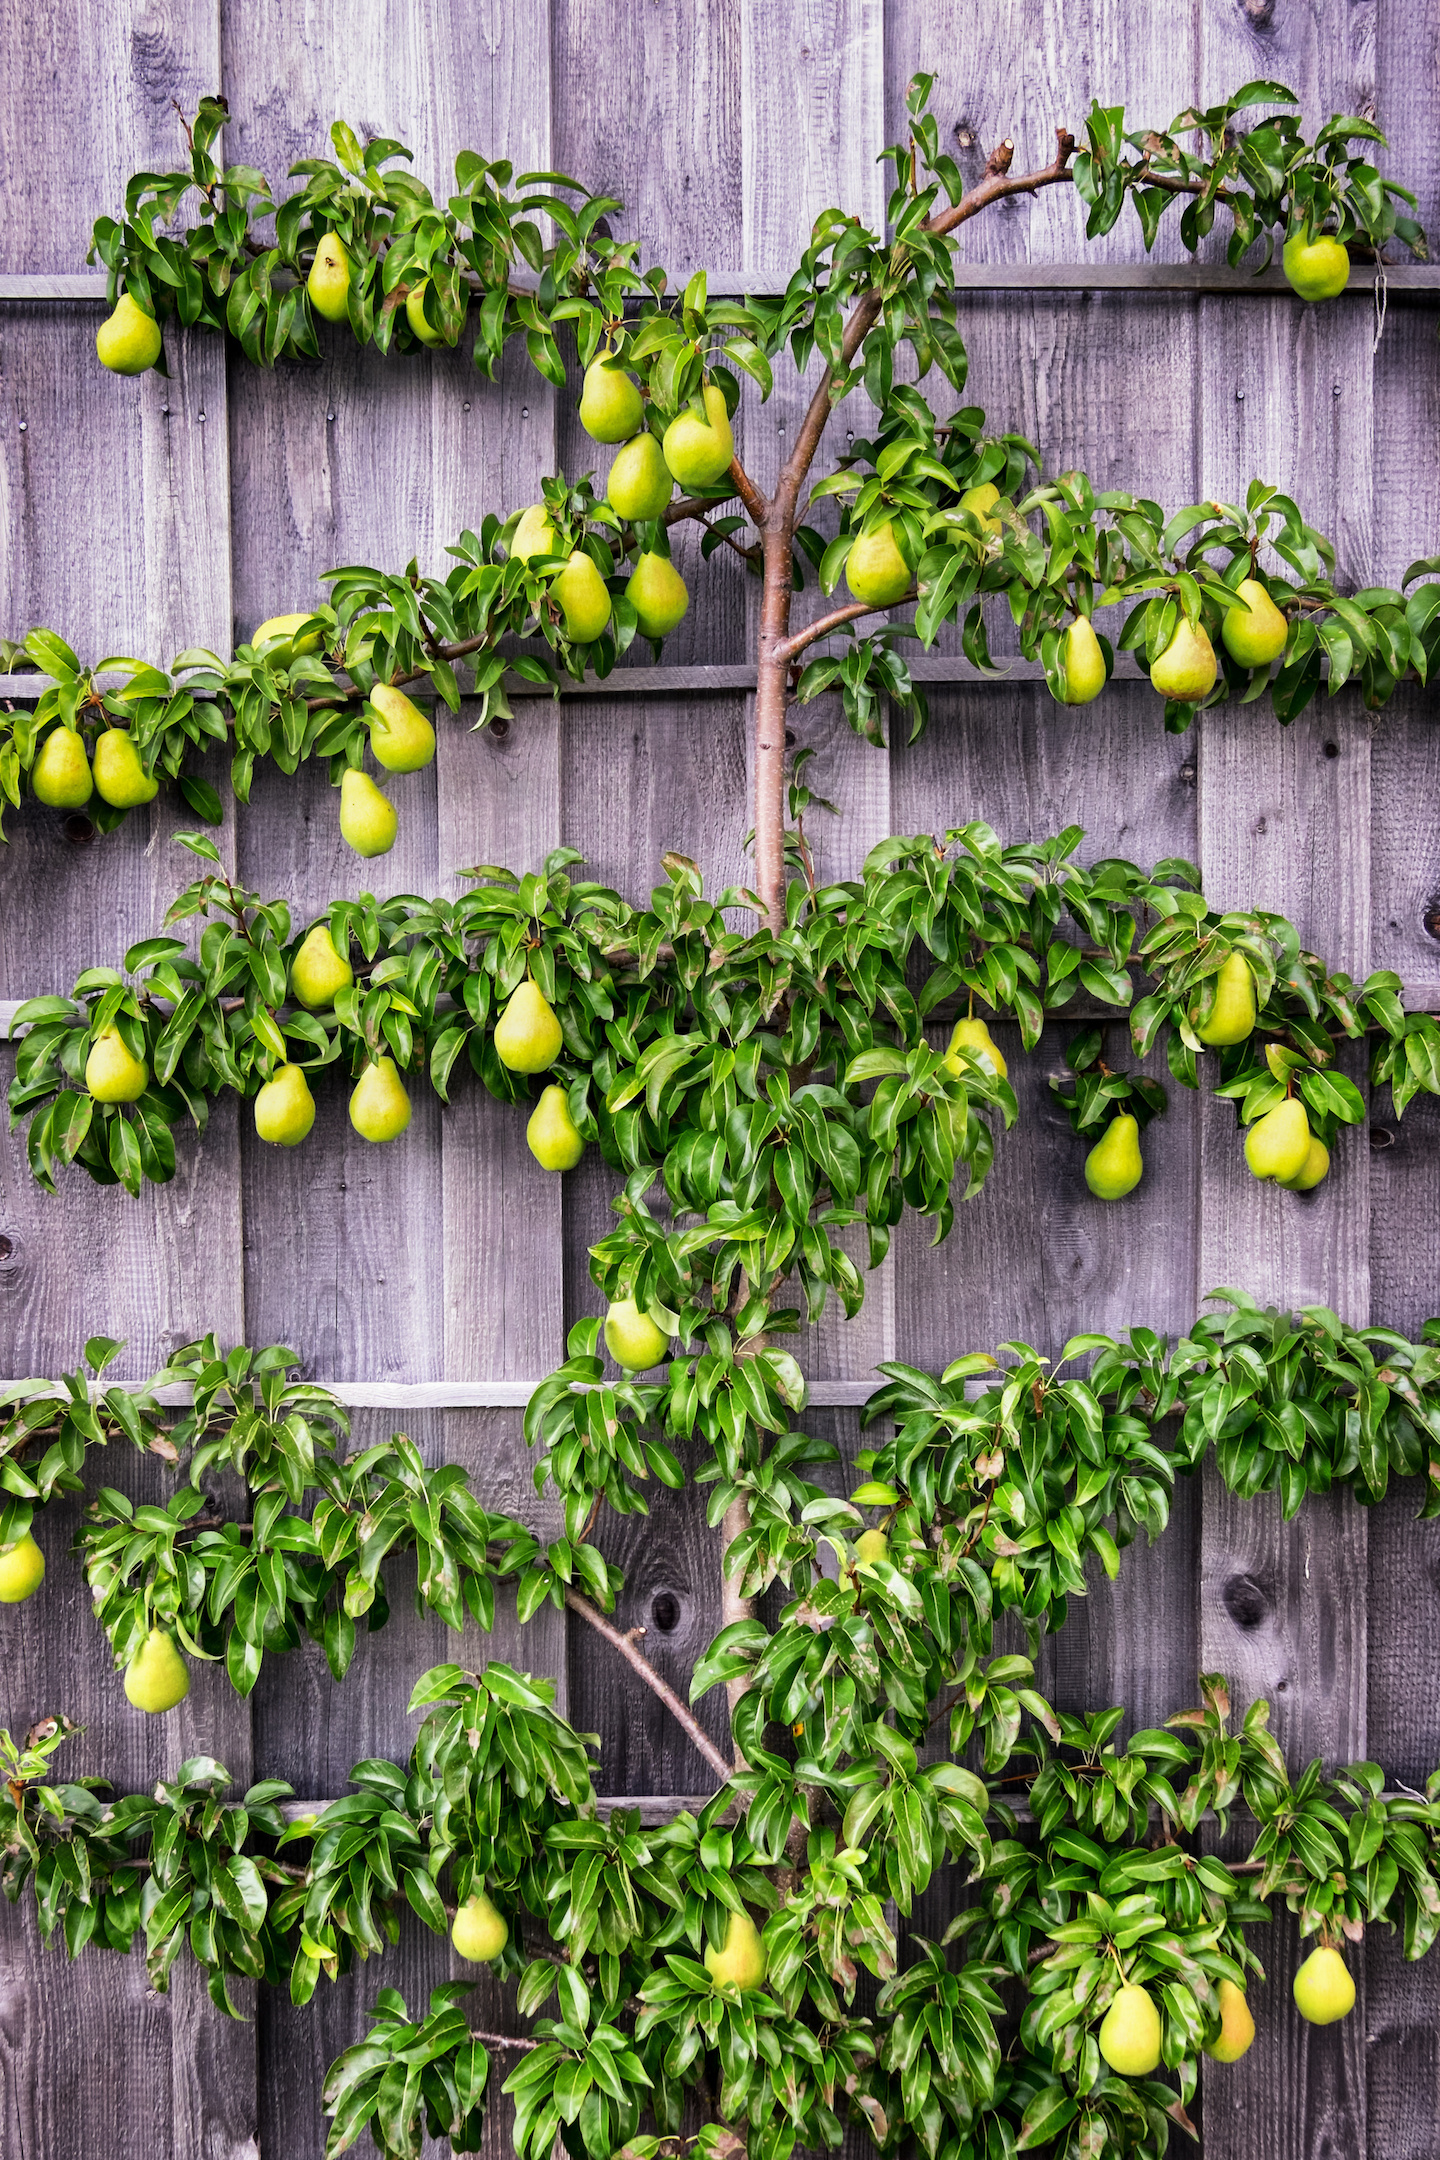 An espaliered pear tree covering a grey fence.